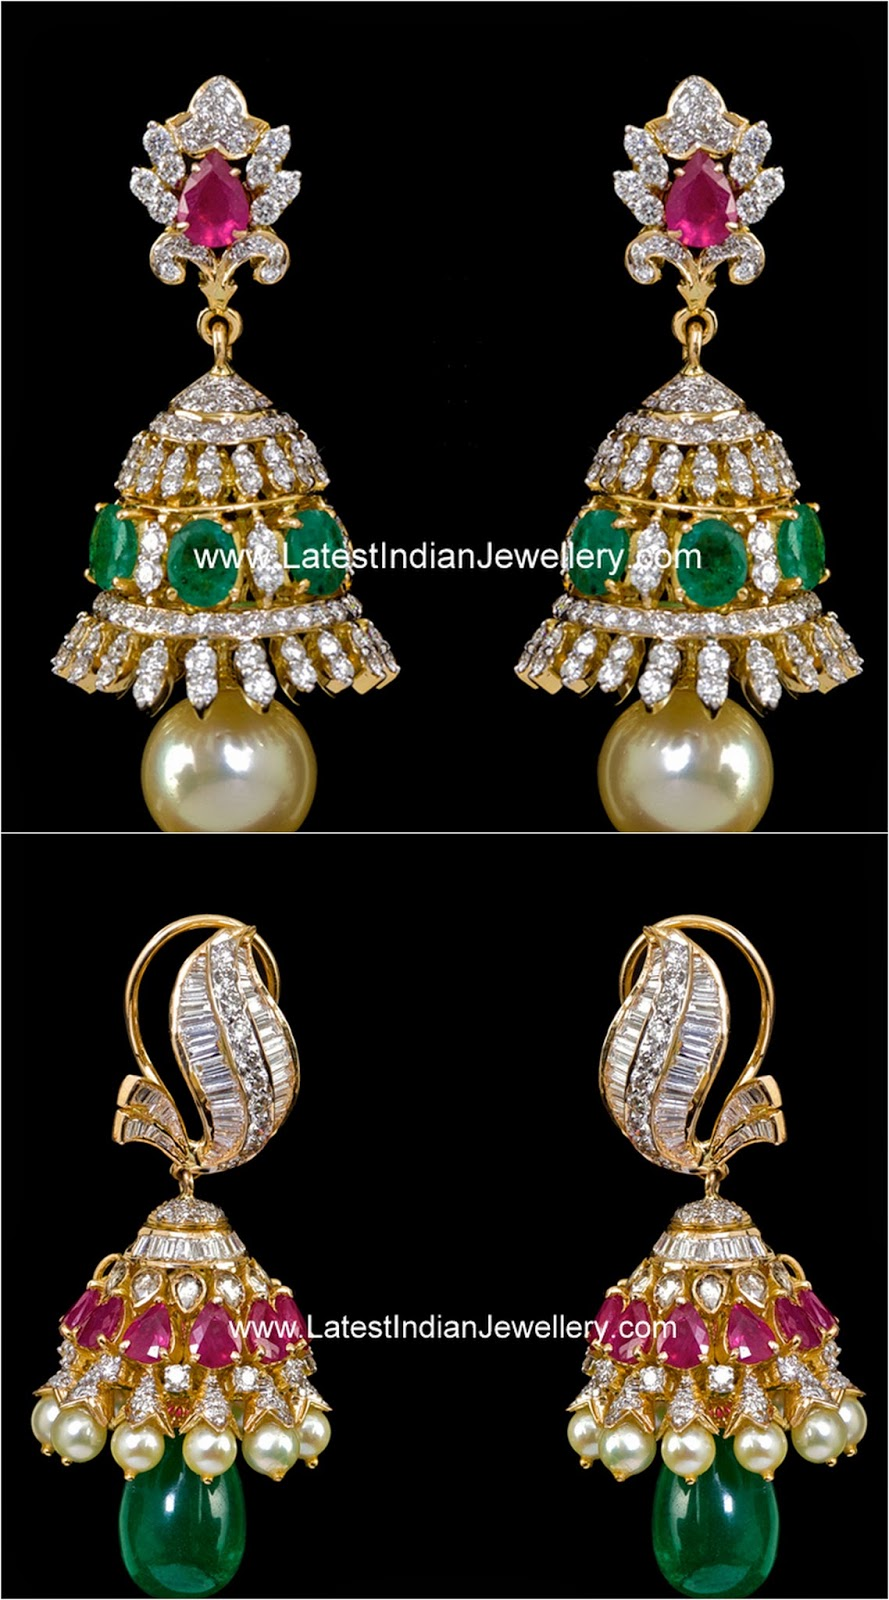 Colorful Diamond Studded Jhumkas